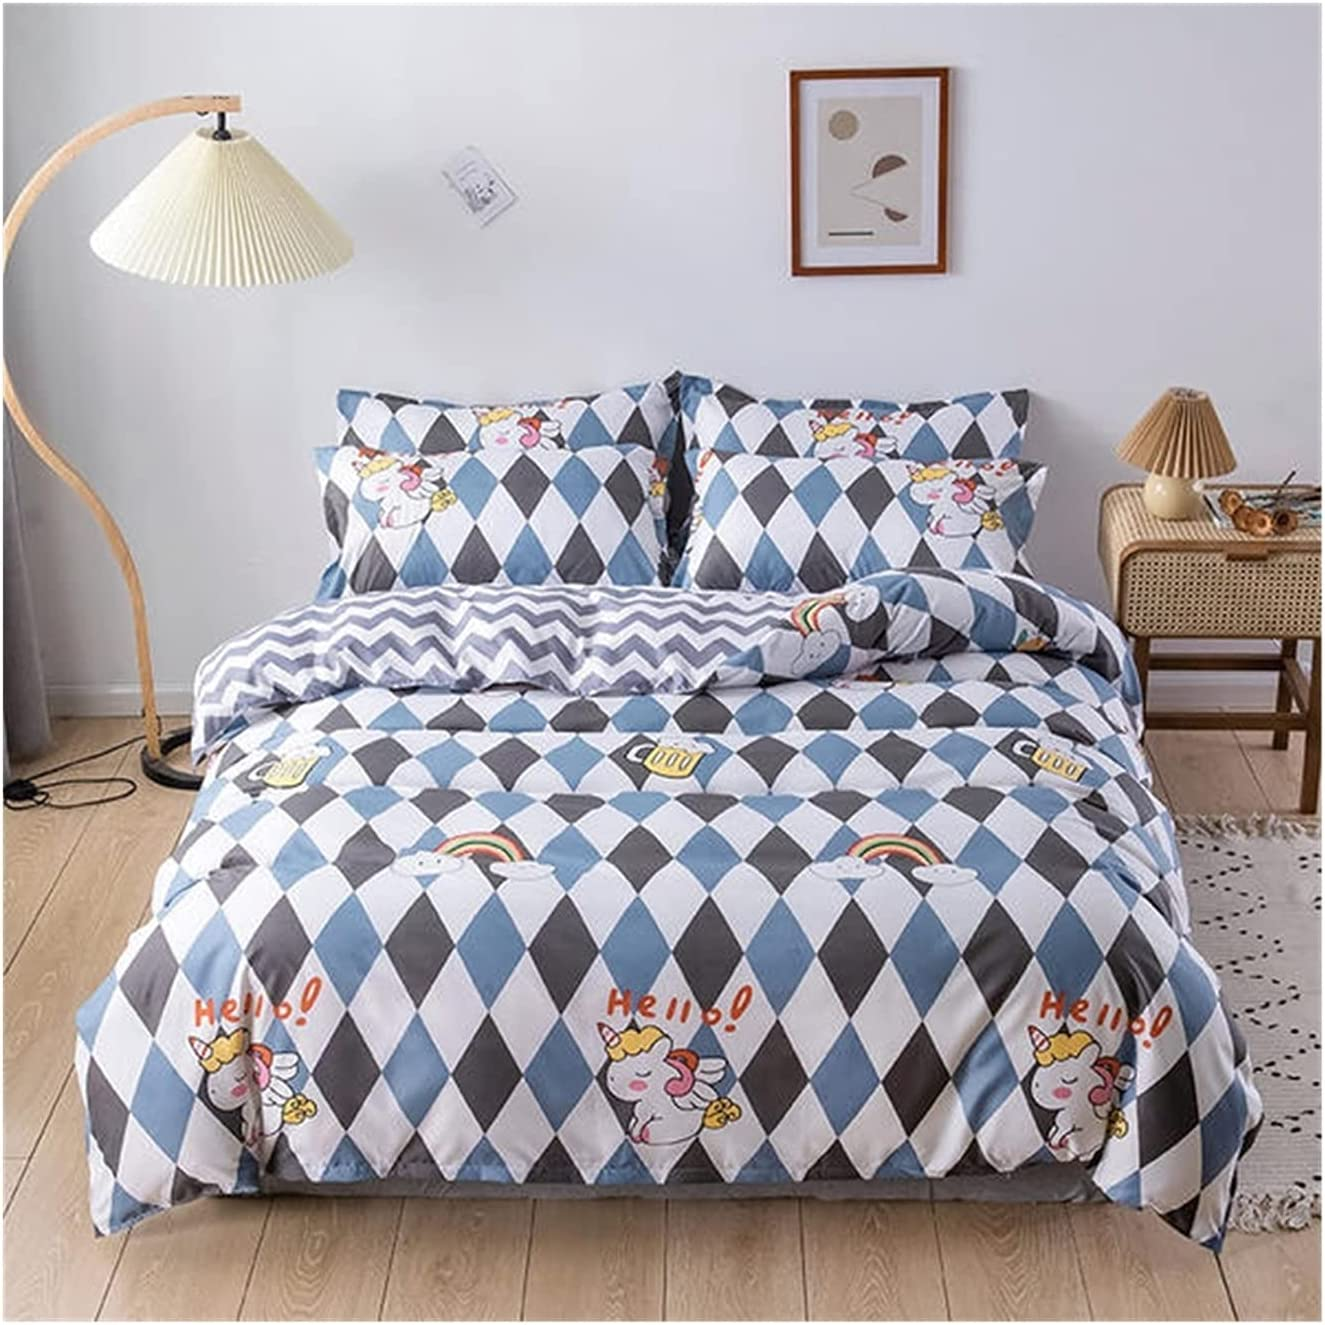 LSDJ QMDSH Home Textile In a popularity Girl Outstanding Bedding Duvet Set Cover Peach Pink